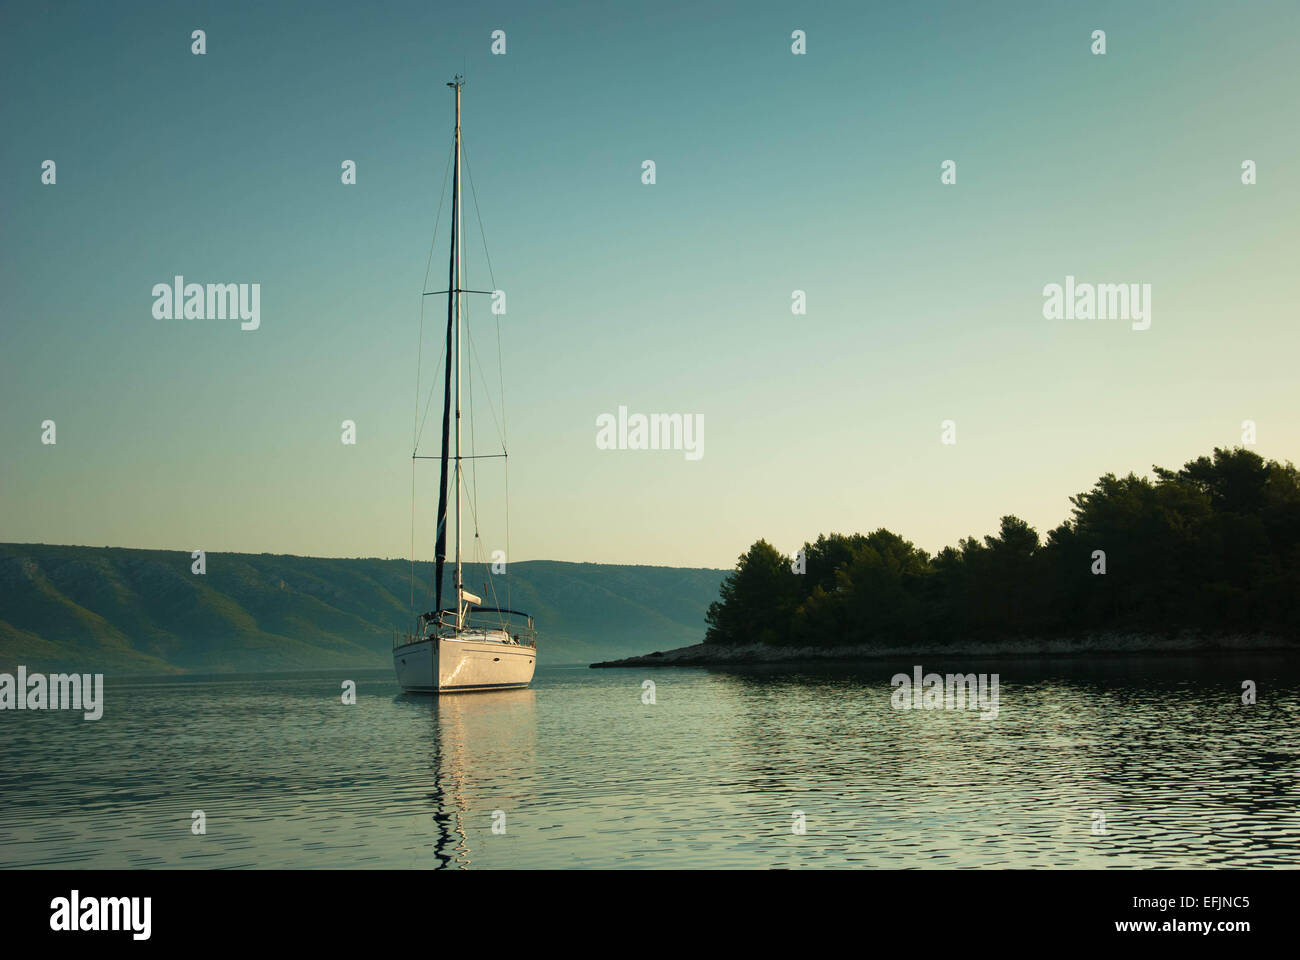 Sailing yacht anchored in a bay Stock Photo